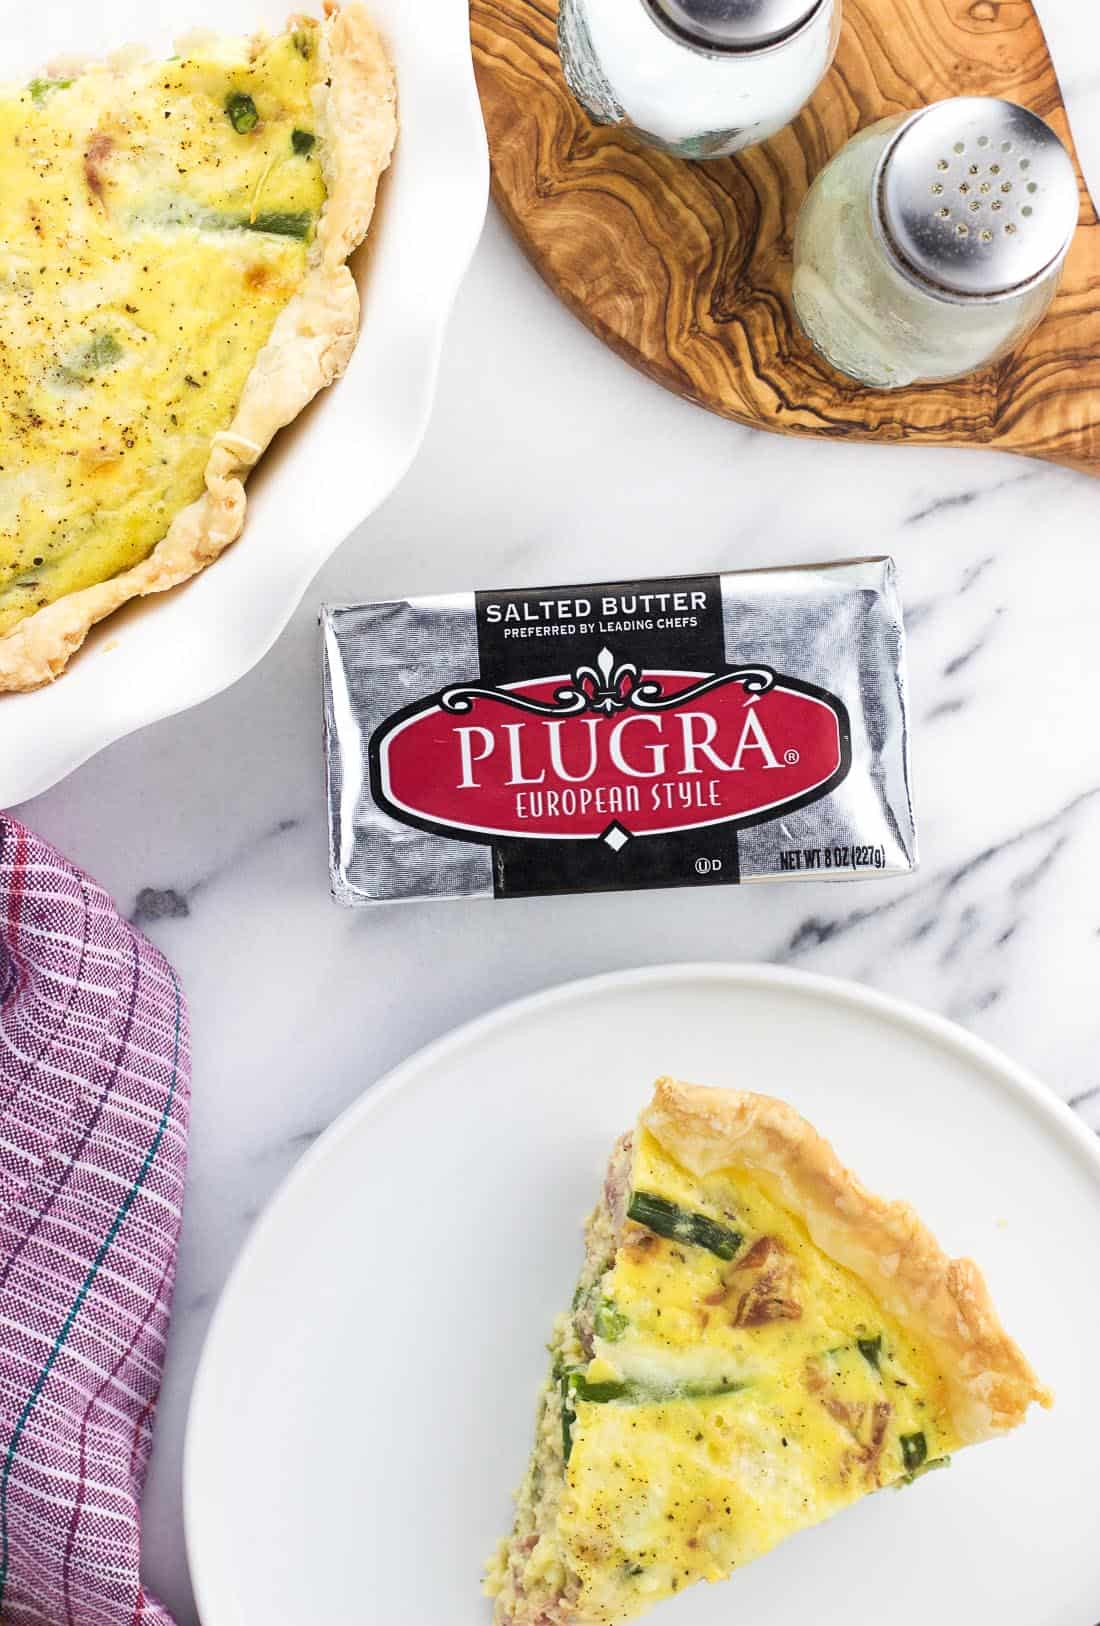 This prosciutto and asparagus quiche recipe features an all-butter flaky pie crust and a creamy and light filling including Gruyère cheese. Enjoy this homemade quiche for breakfast, dinner, or any meal in between!